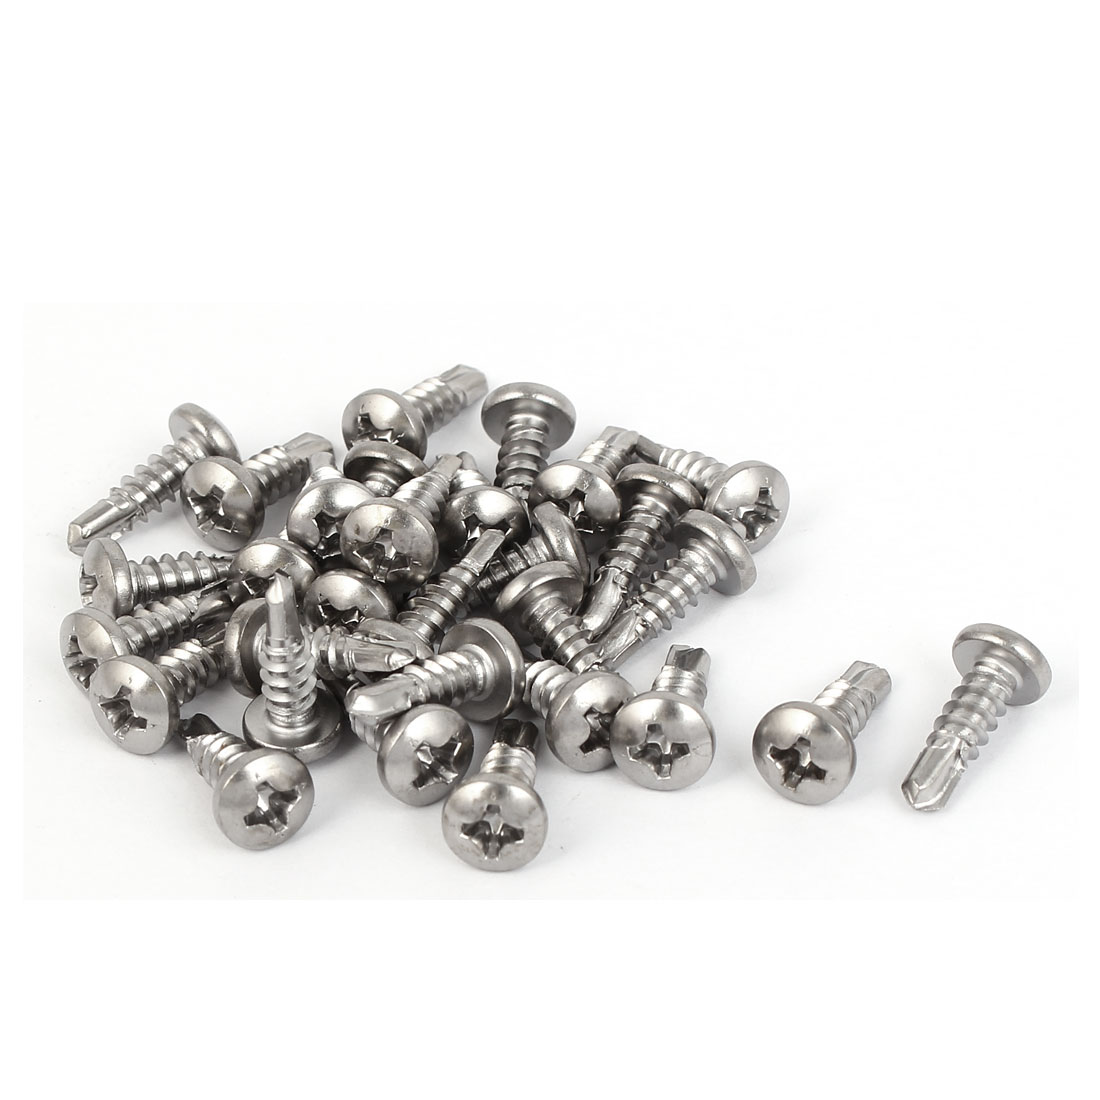 M3.9 x 13mm #7 Male Thread Phillips Pan Head Self Tapping Drilling Screws 30 Pcs